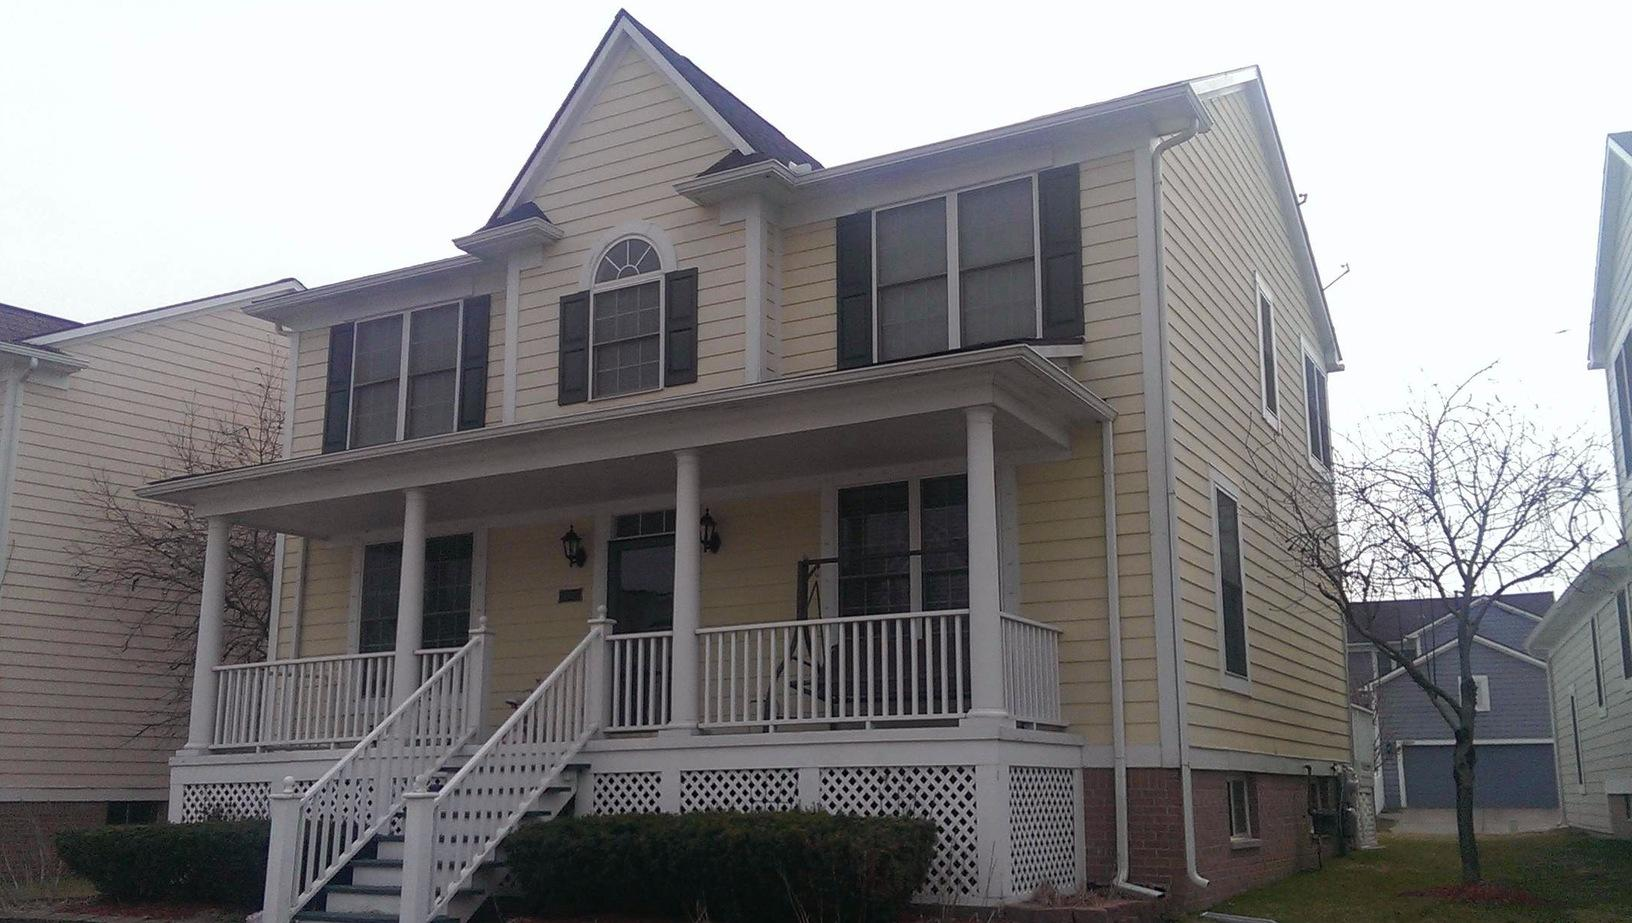 James Hardie Siding painted with Rhino Shield on home in Novi, MI - Before Photo